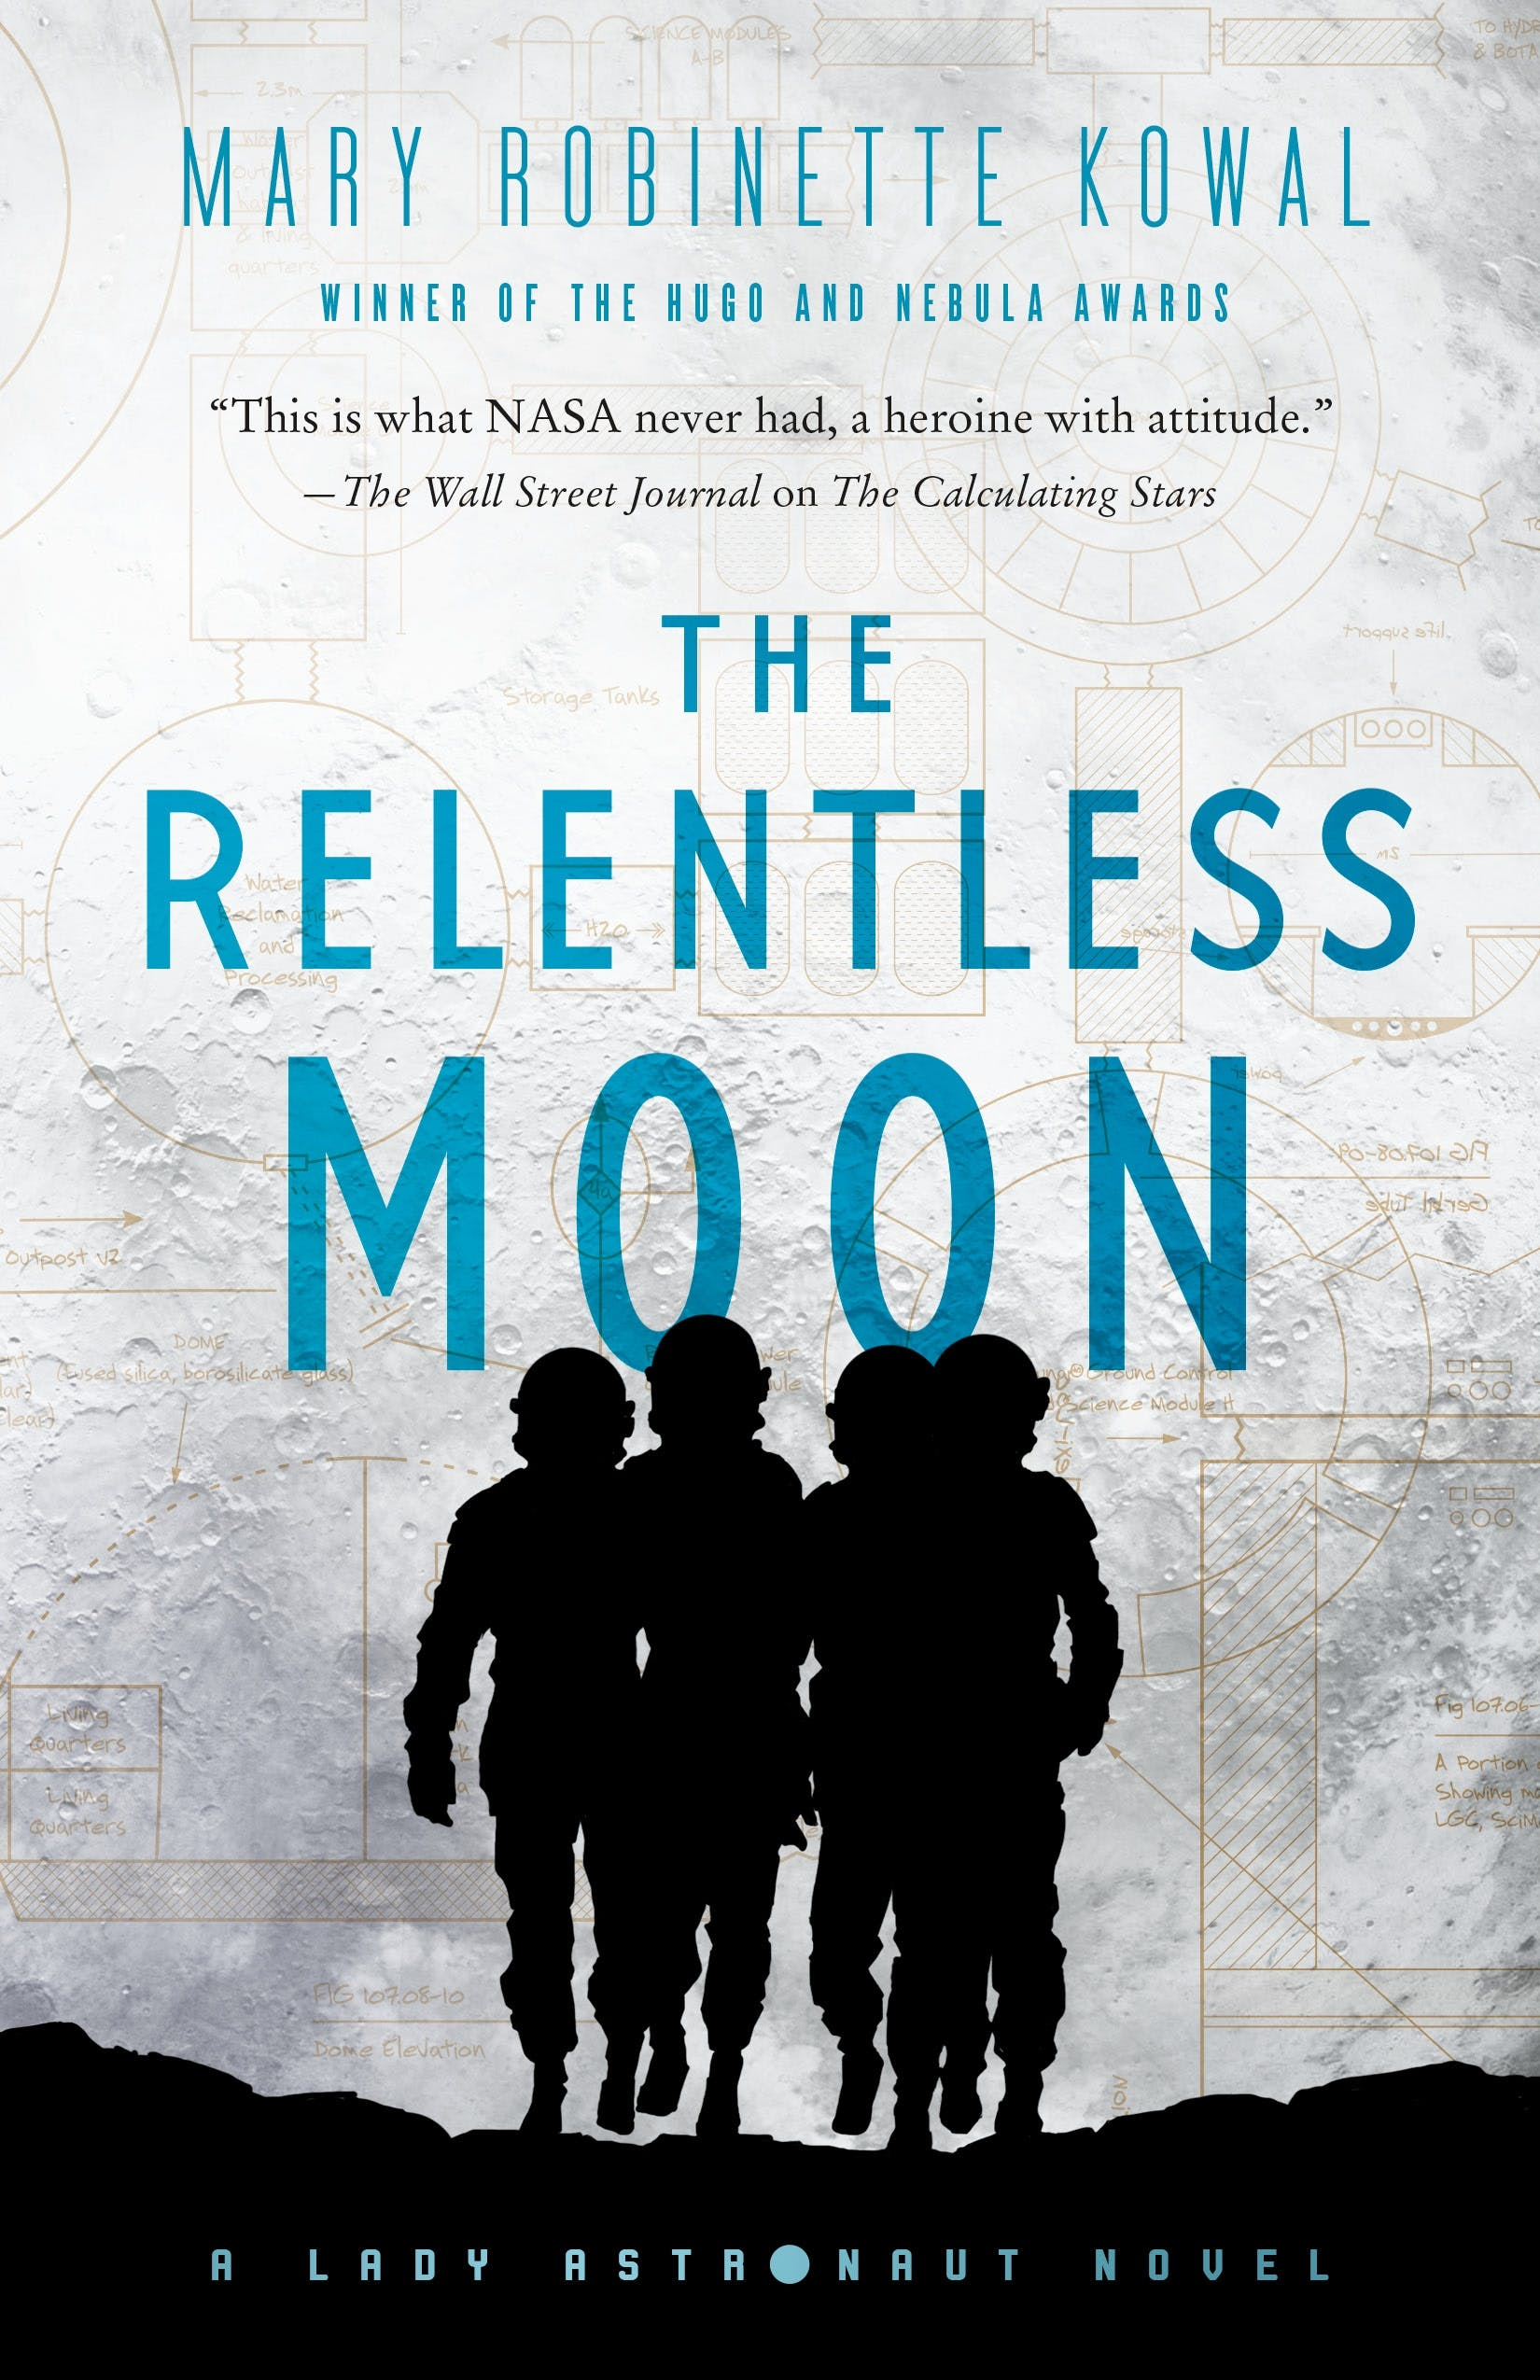 Image of The Relentless Moon